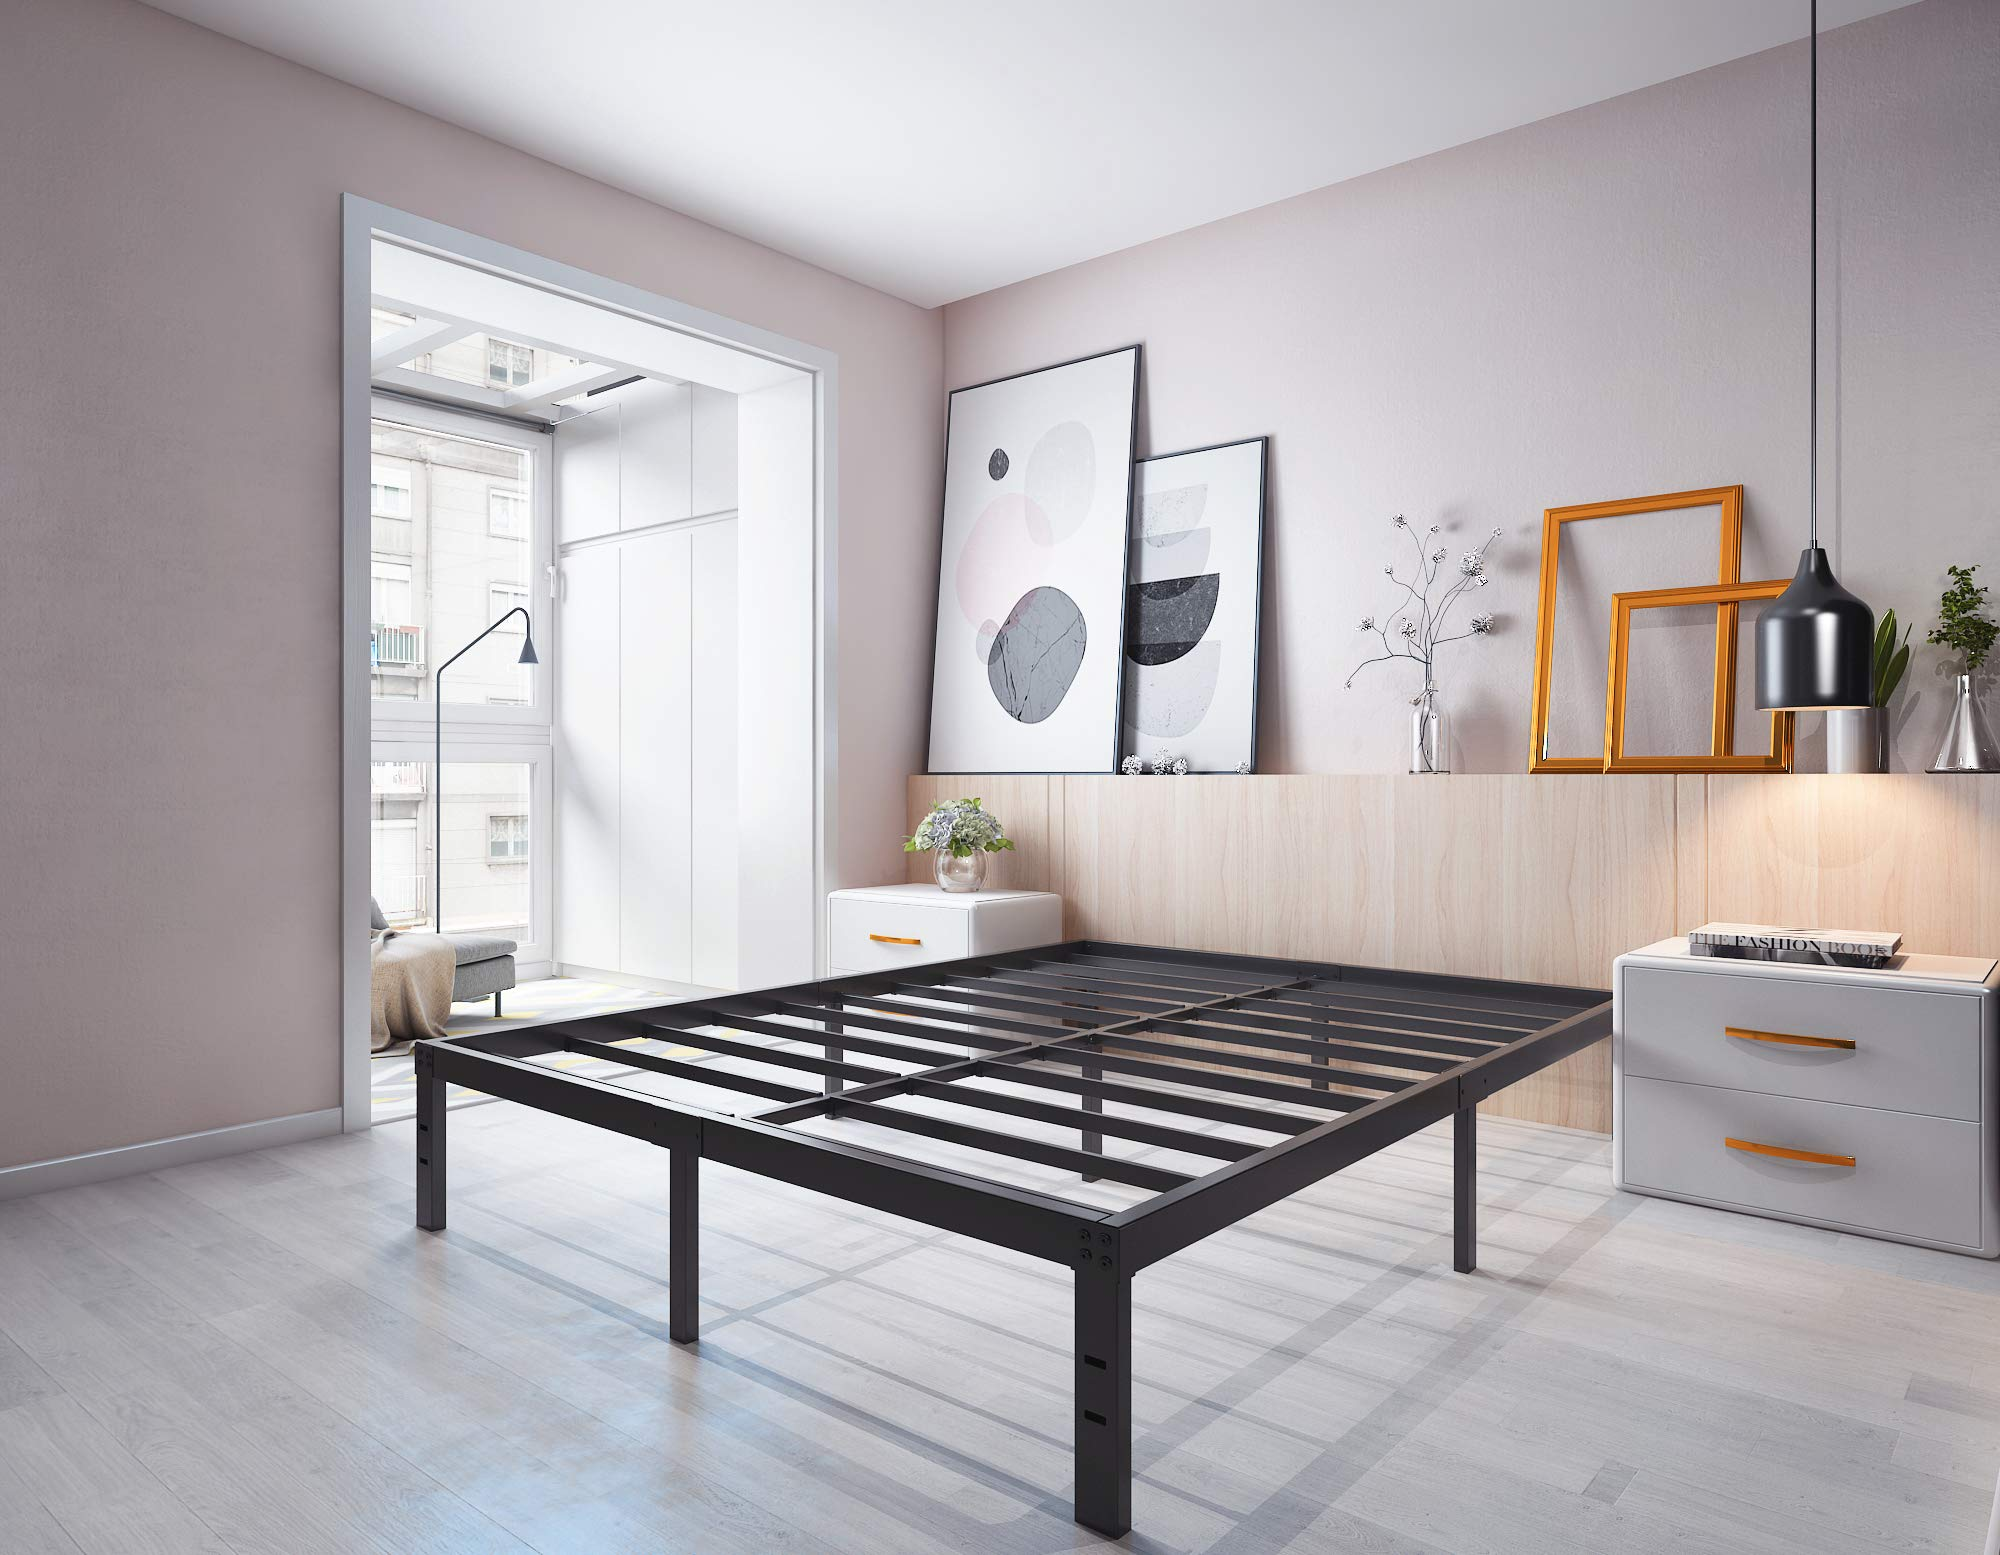 Homdock 14 Inch Metal Platform Bed Frame/Sturdy Strong Steel Structure 3000 lbs Heavy Duty/Noise Free/None Slip Mattress Foundation/No Box Spring Needed/Black Finish, King